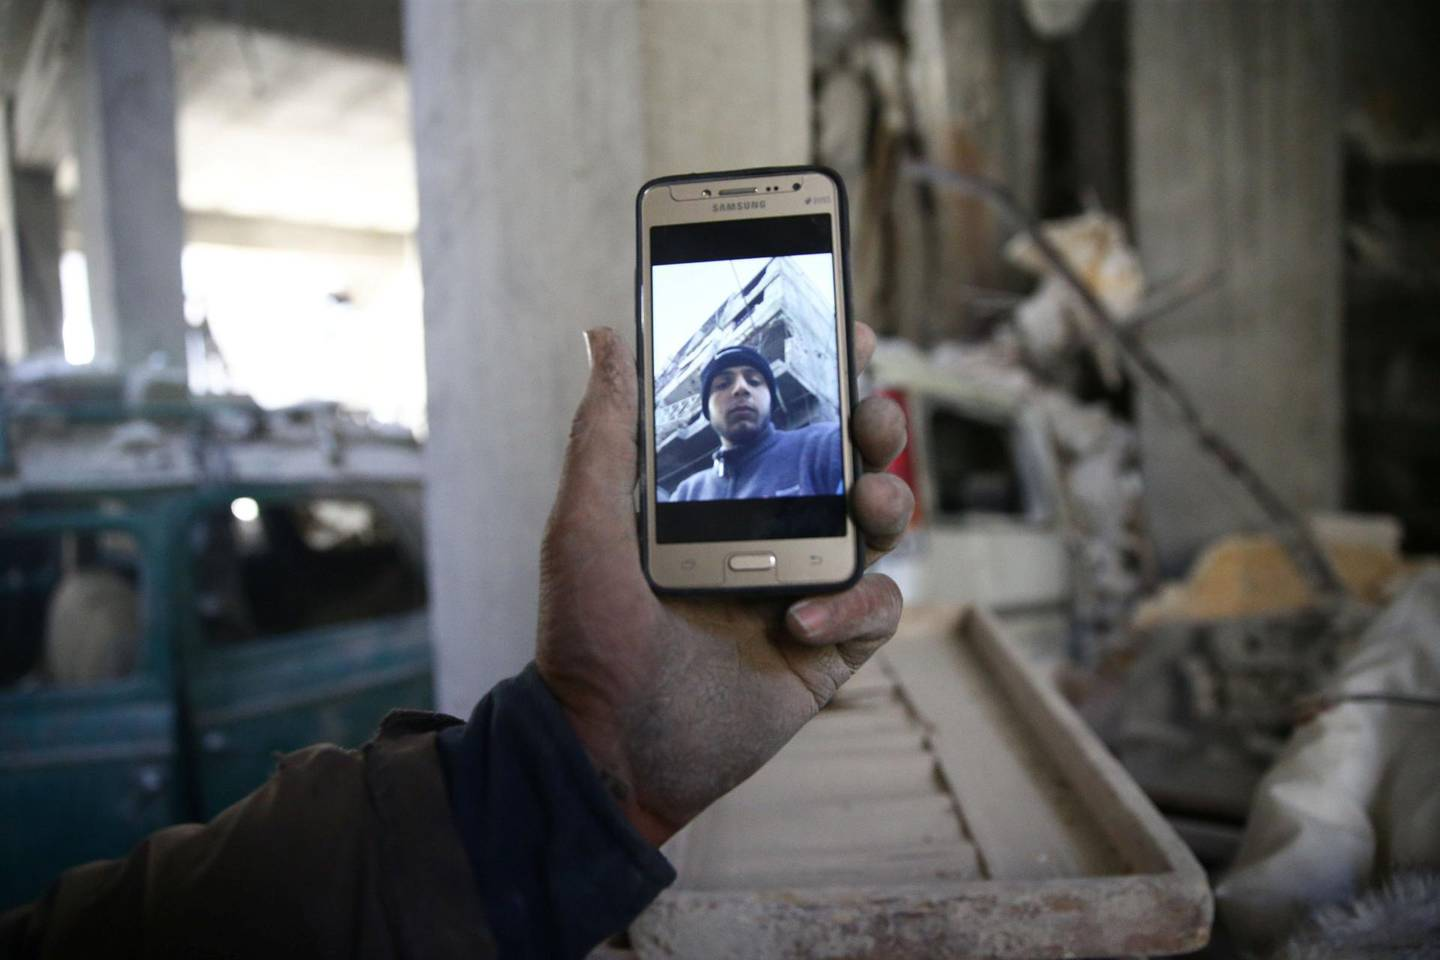 Abu Mohammad Alaya, 50, holds a mobile phone with his son Mohammad's picture on the screen, who was killed, in Douma, Syria March 2, 2018. Picture taken March 2, 2018. REUTERS/Bassam Khabieh